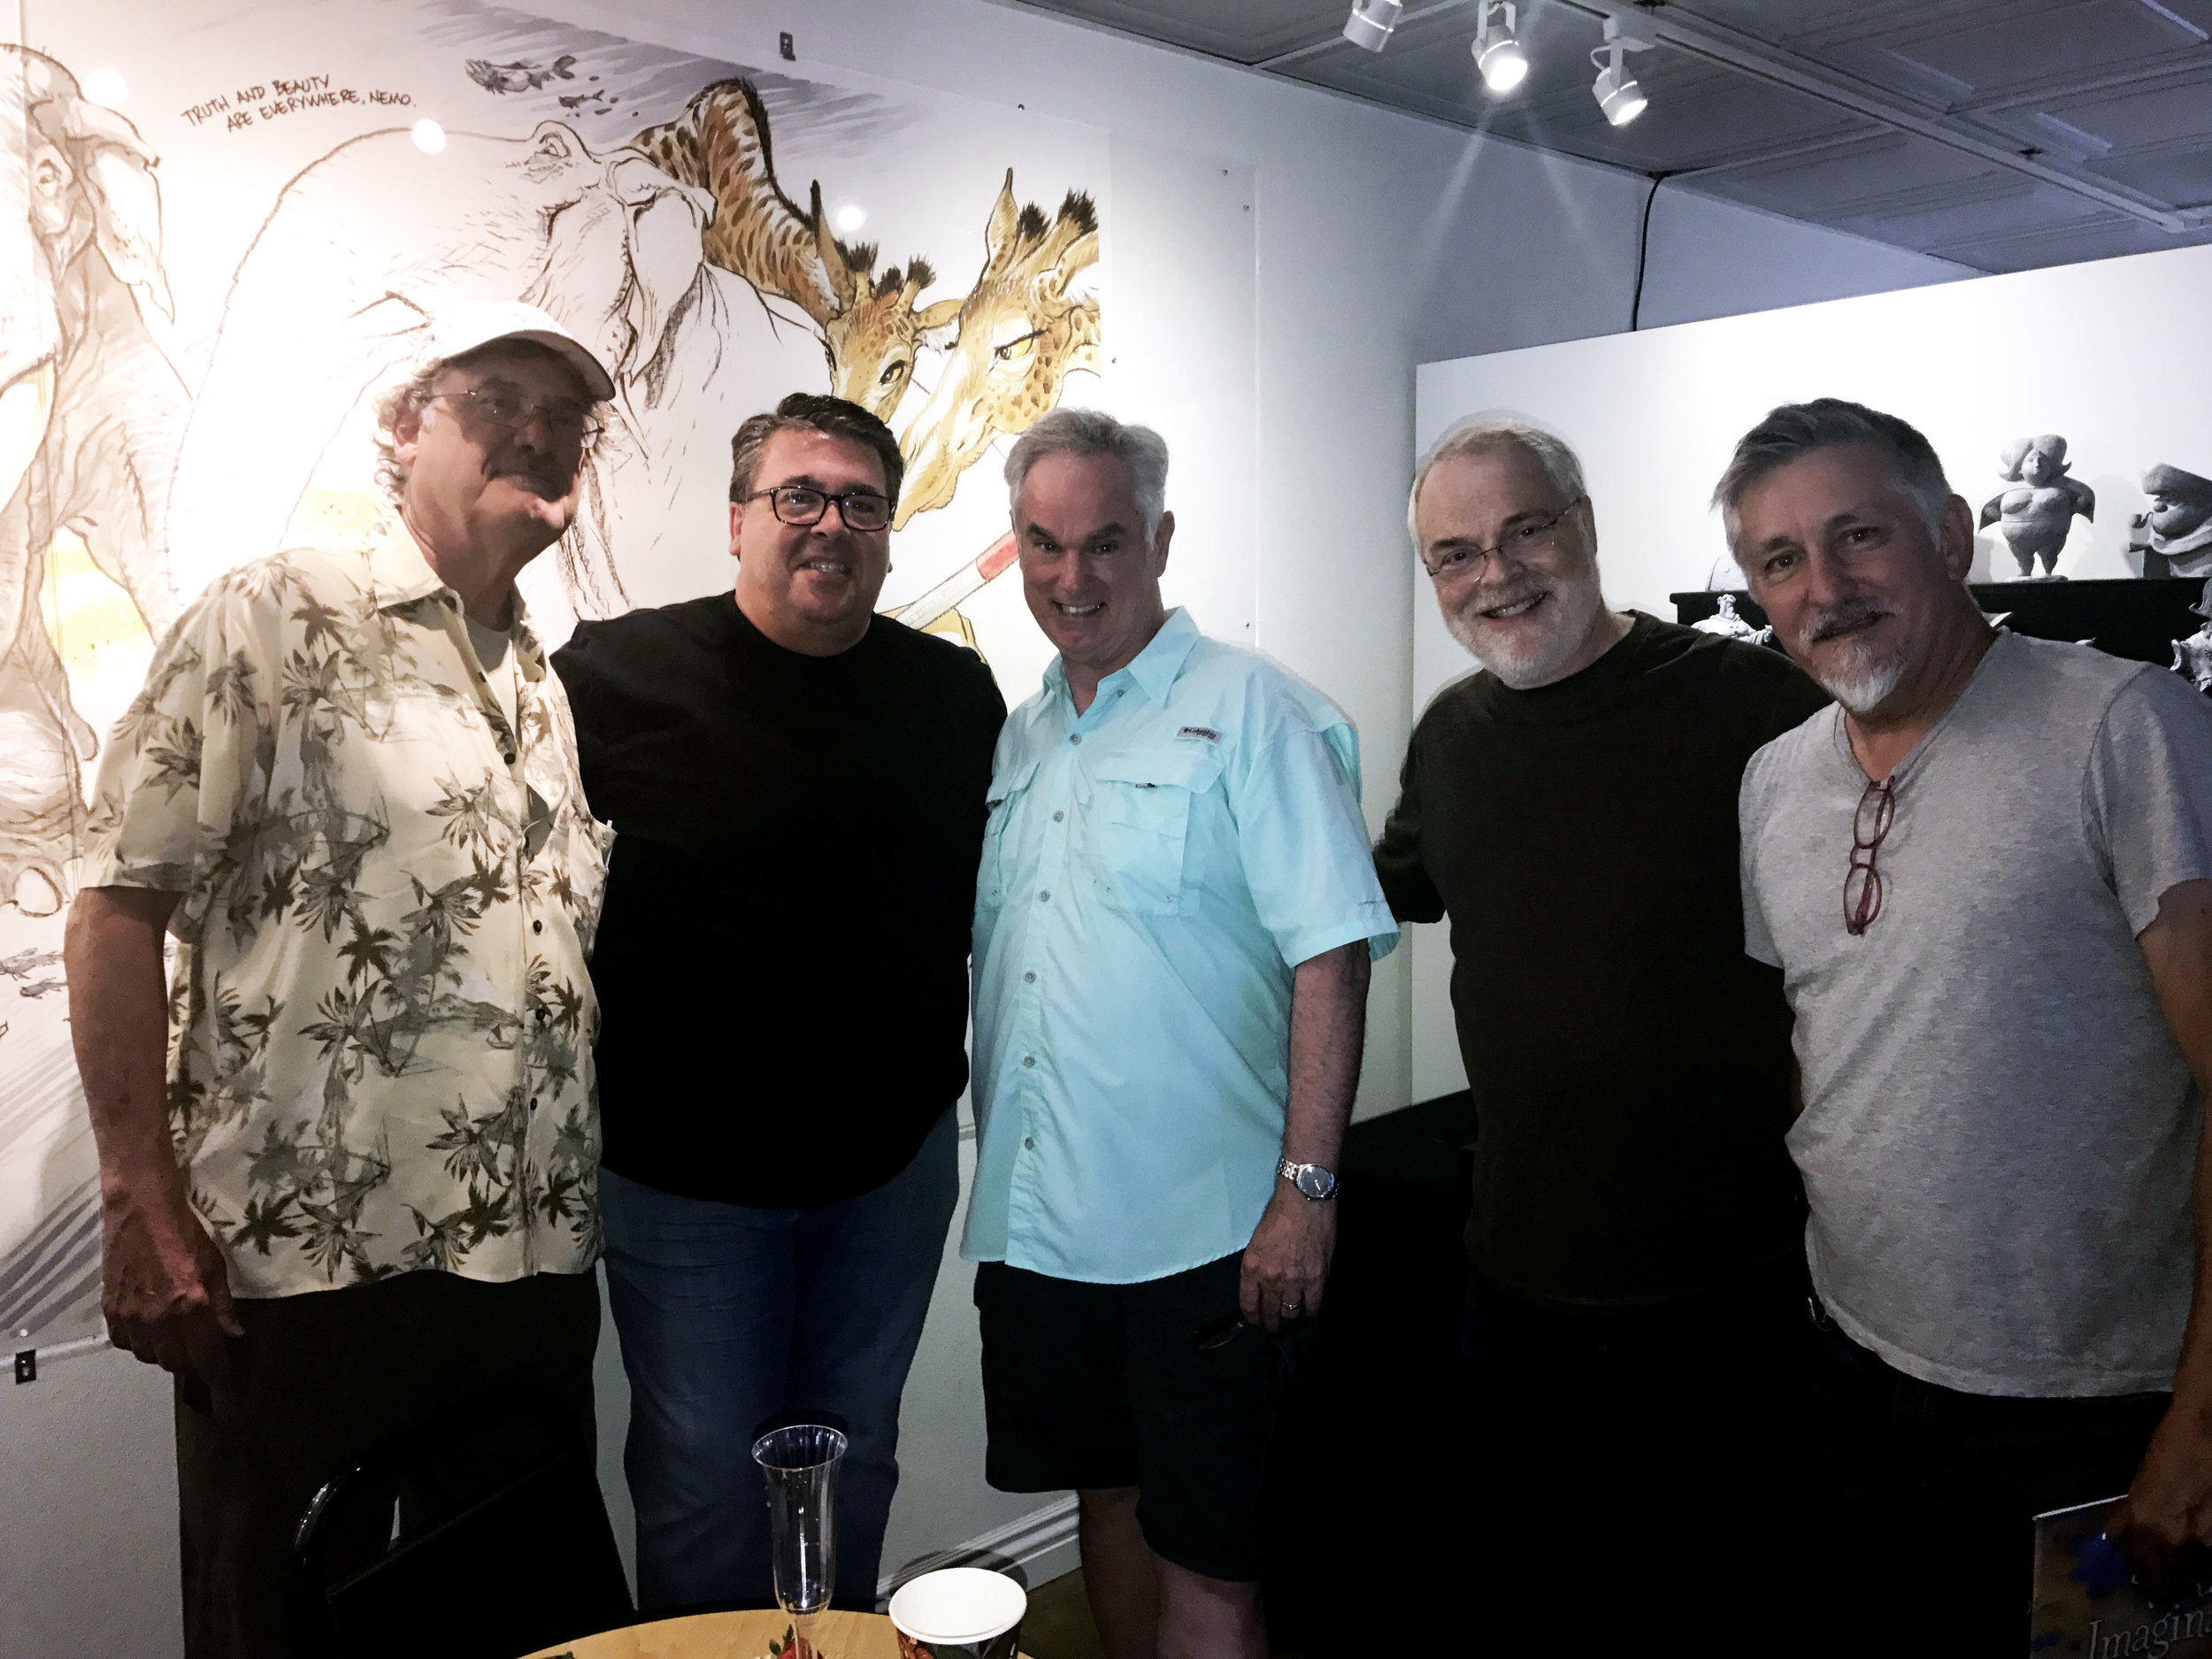 Alan Coats (Claude Coats' son), Dave Bossert, John, Ron Clements, and Dave Spafford.